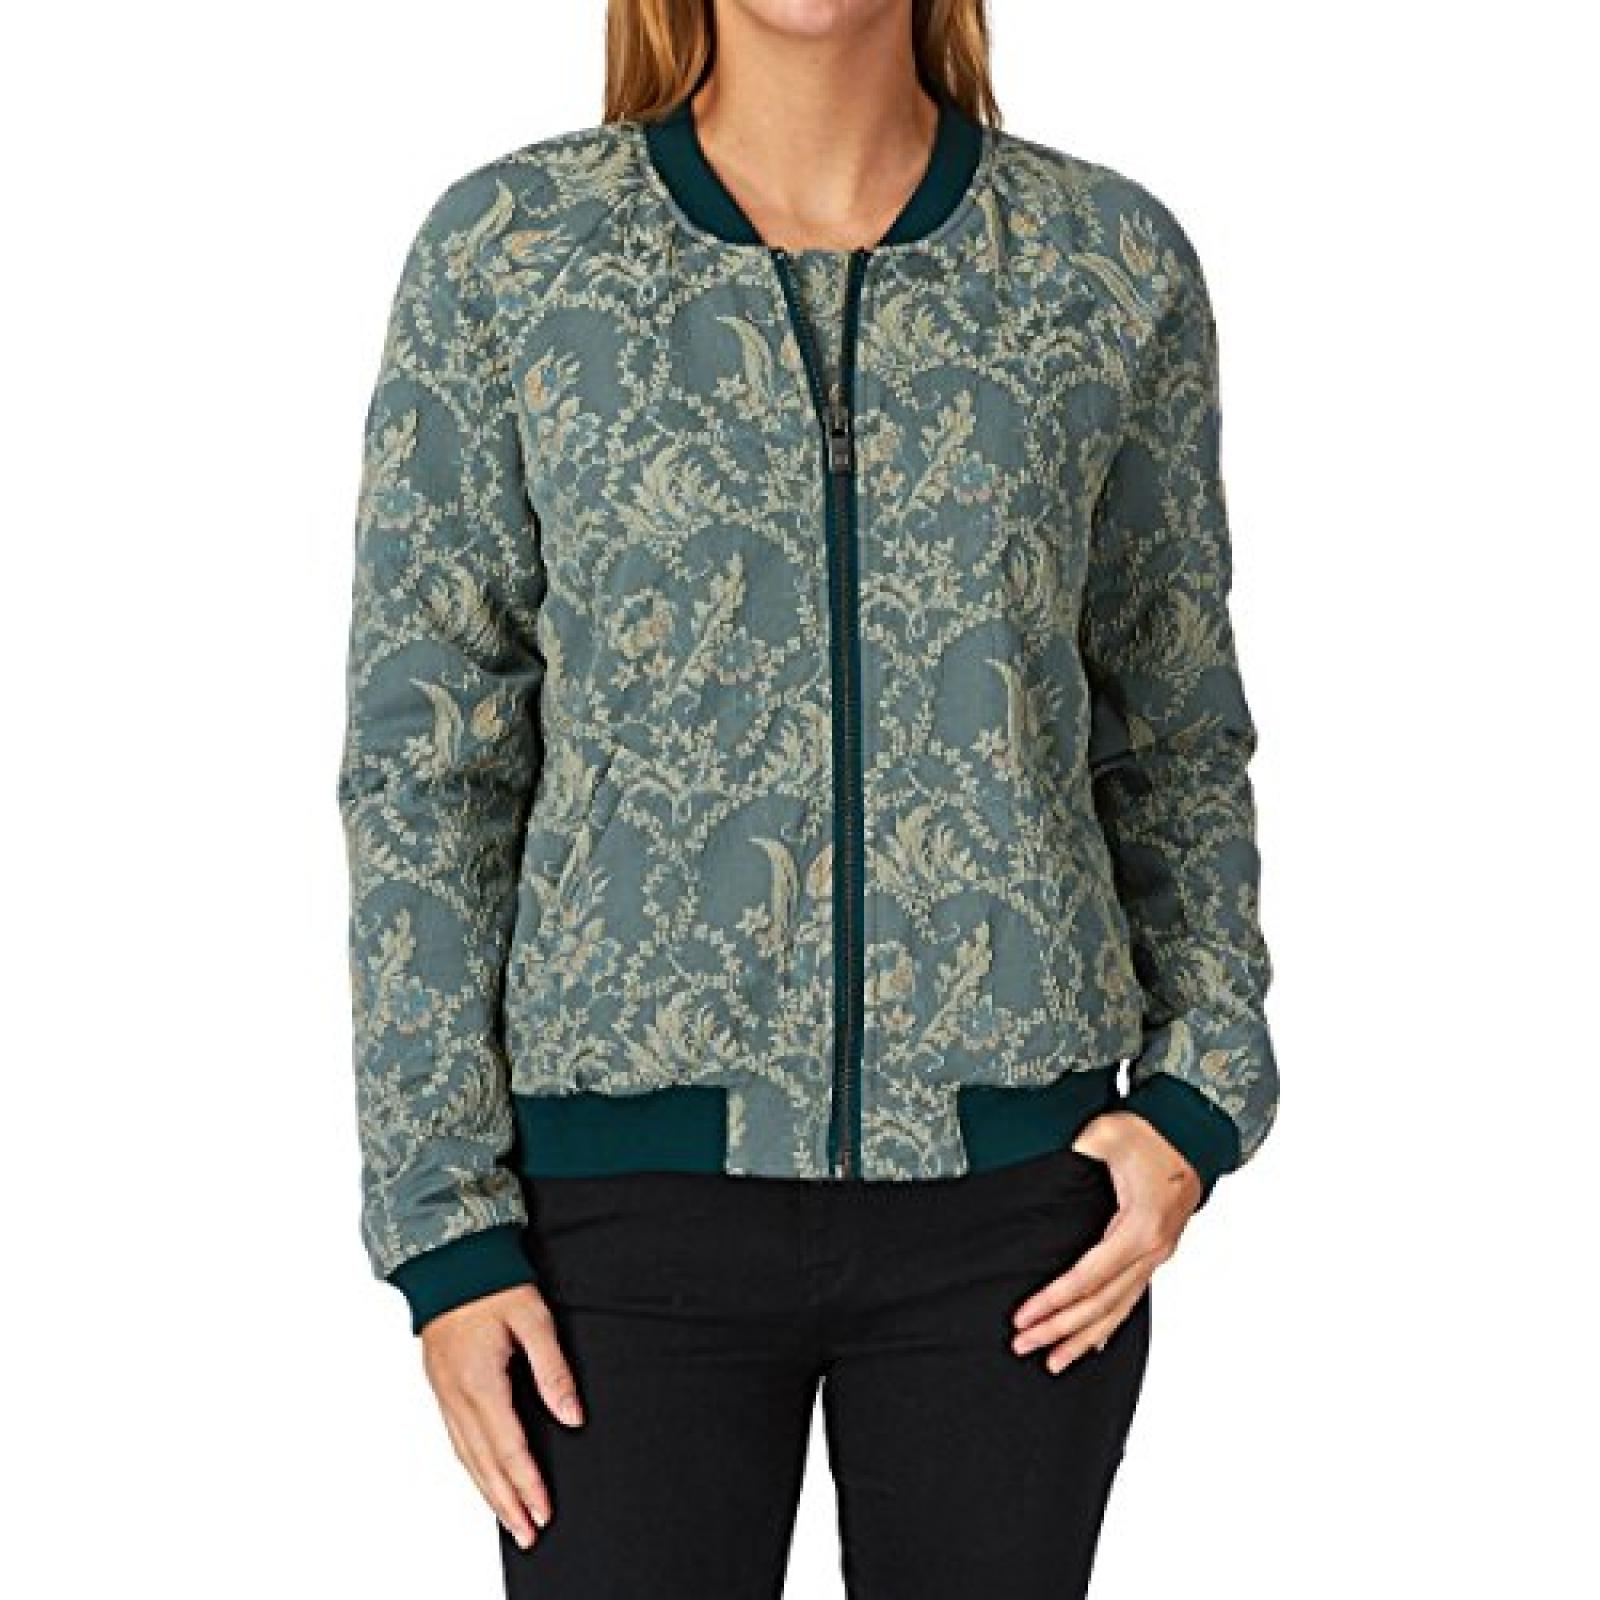 Maison Scotch Oriental Bomber Jacket - Light Mint Orient